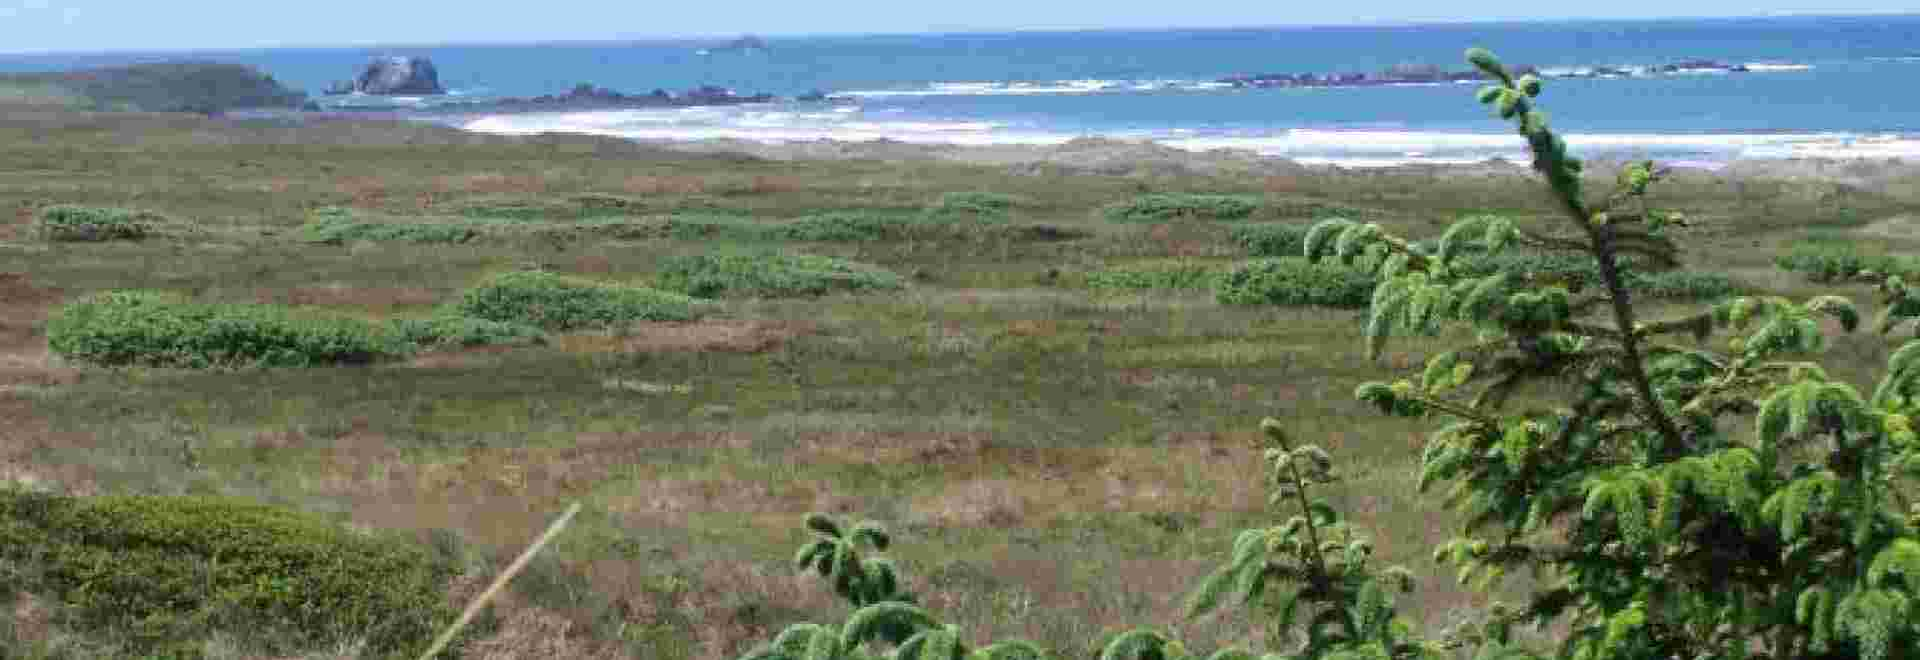 Coastal Wetlands of Tolowa Dunes State Park